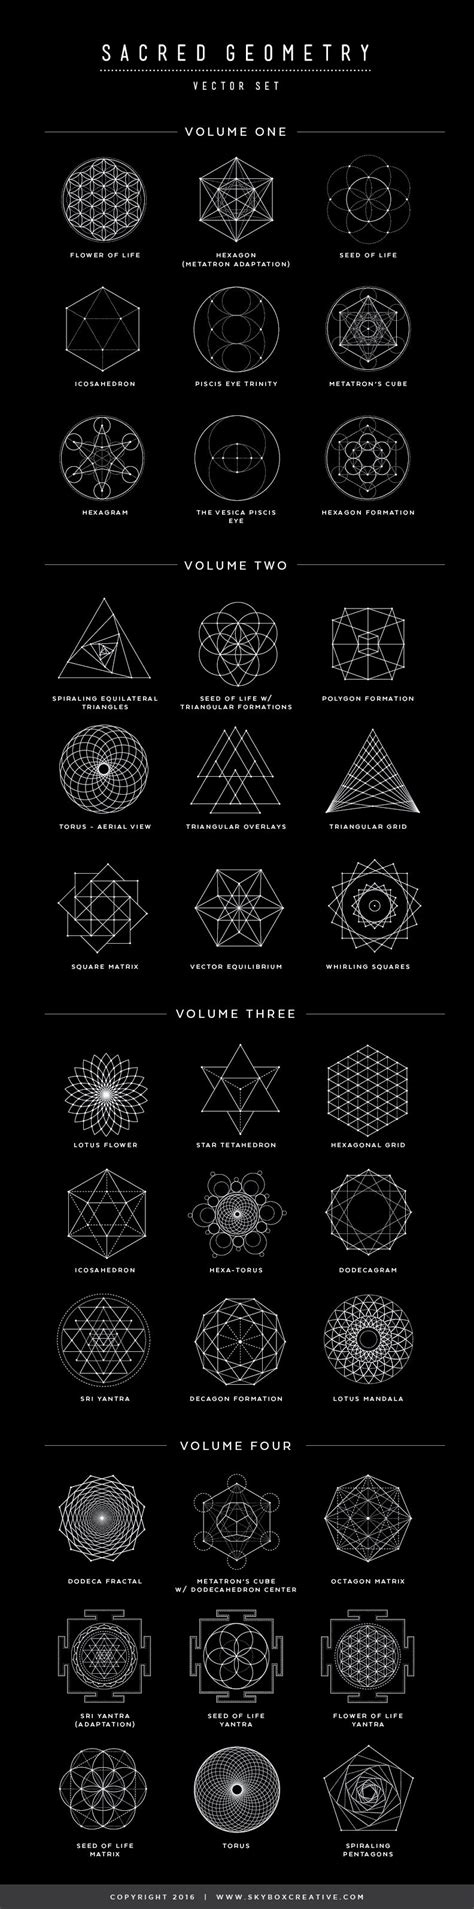 geometric pattern meanings sacred geometry symbols their names and meanings great